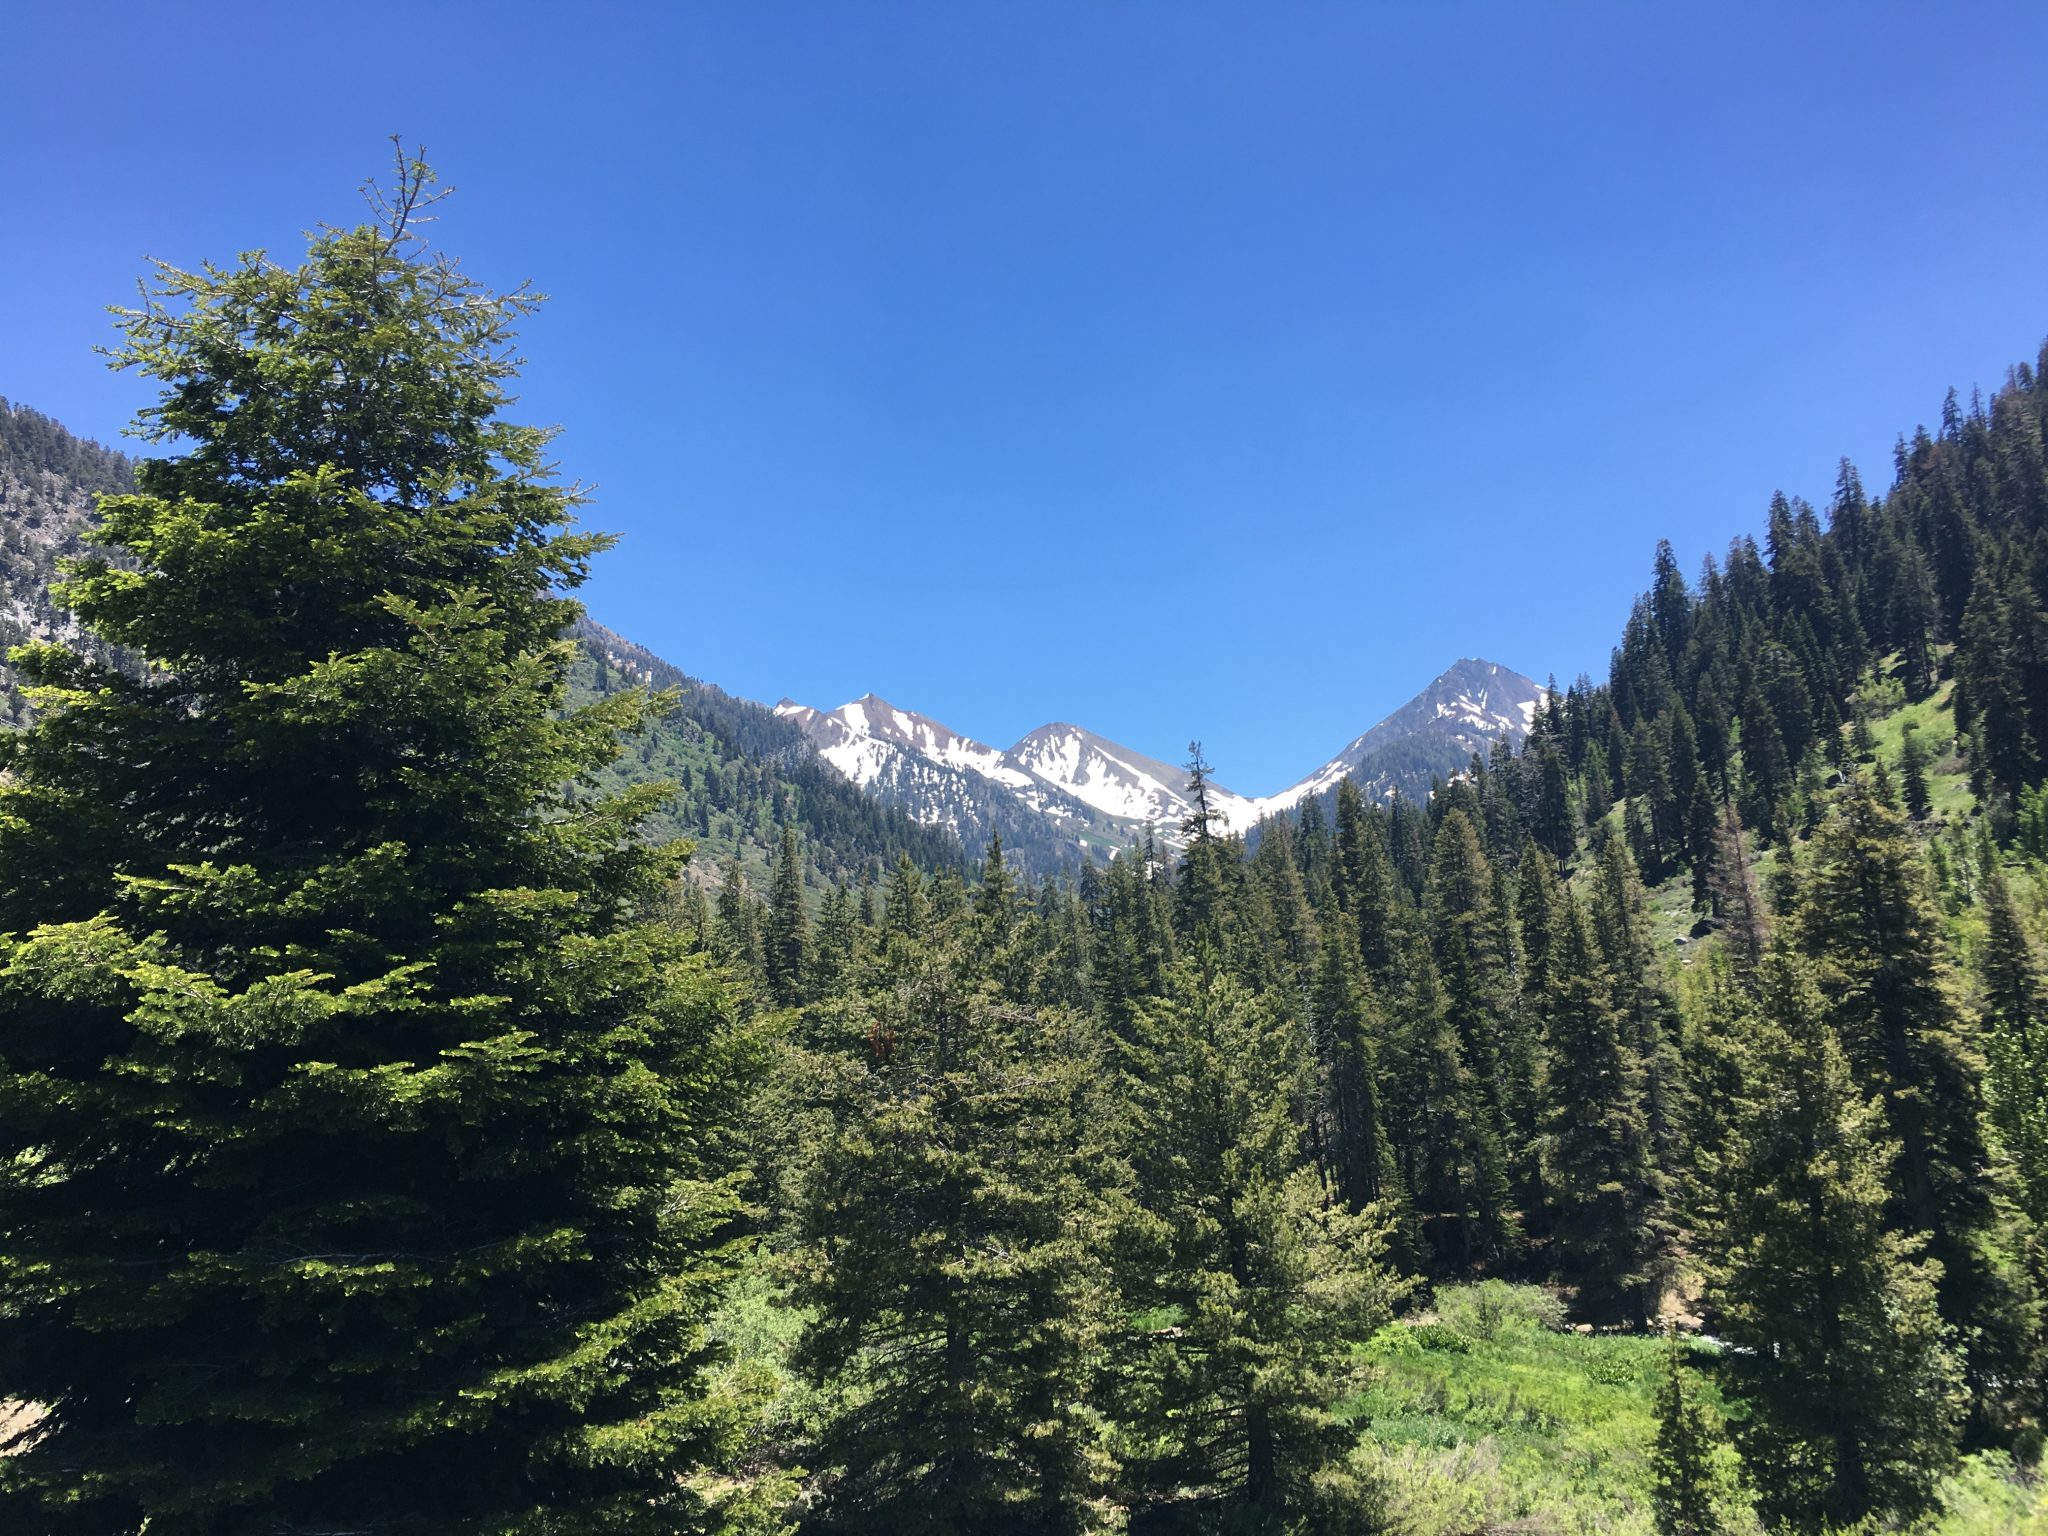 View of the Mountains in Sequoia National Park